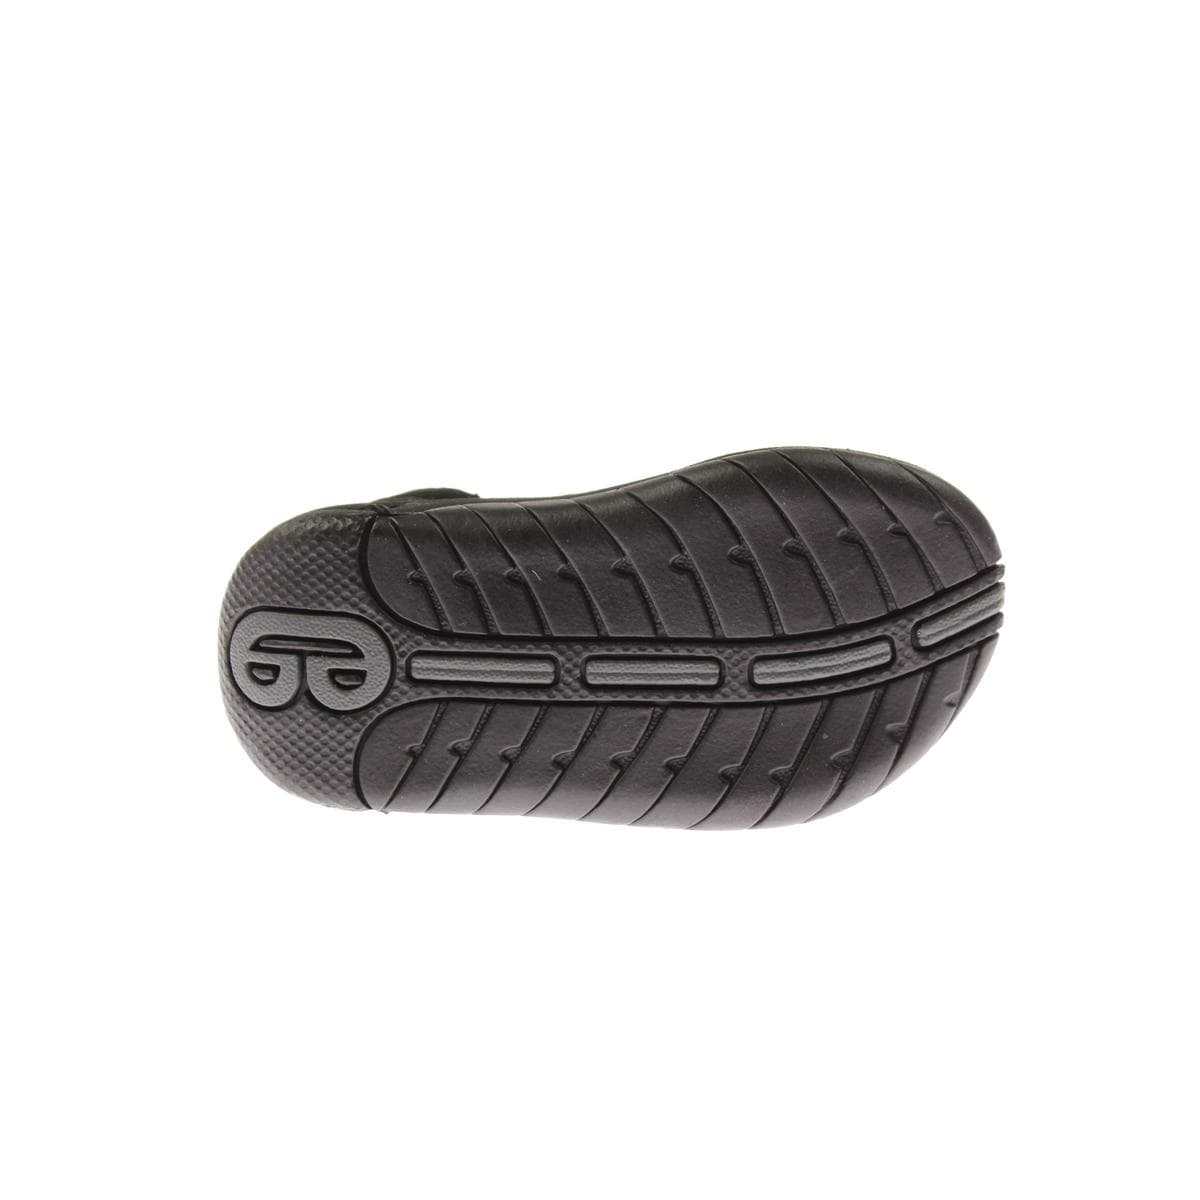 d7646a7de218 Shop Reef Boys Slap II Thong Sandals Slip On Toddler - Free Shipping On  Orders Over  45 - Overstock.com - 13139277